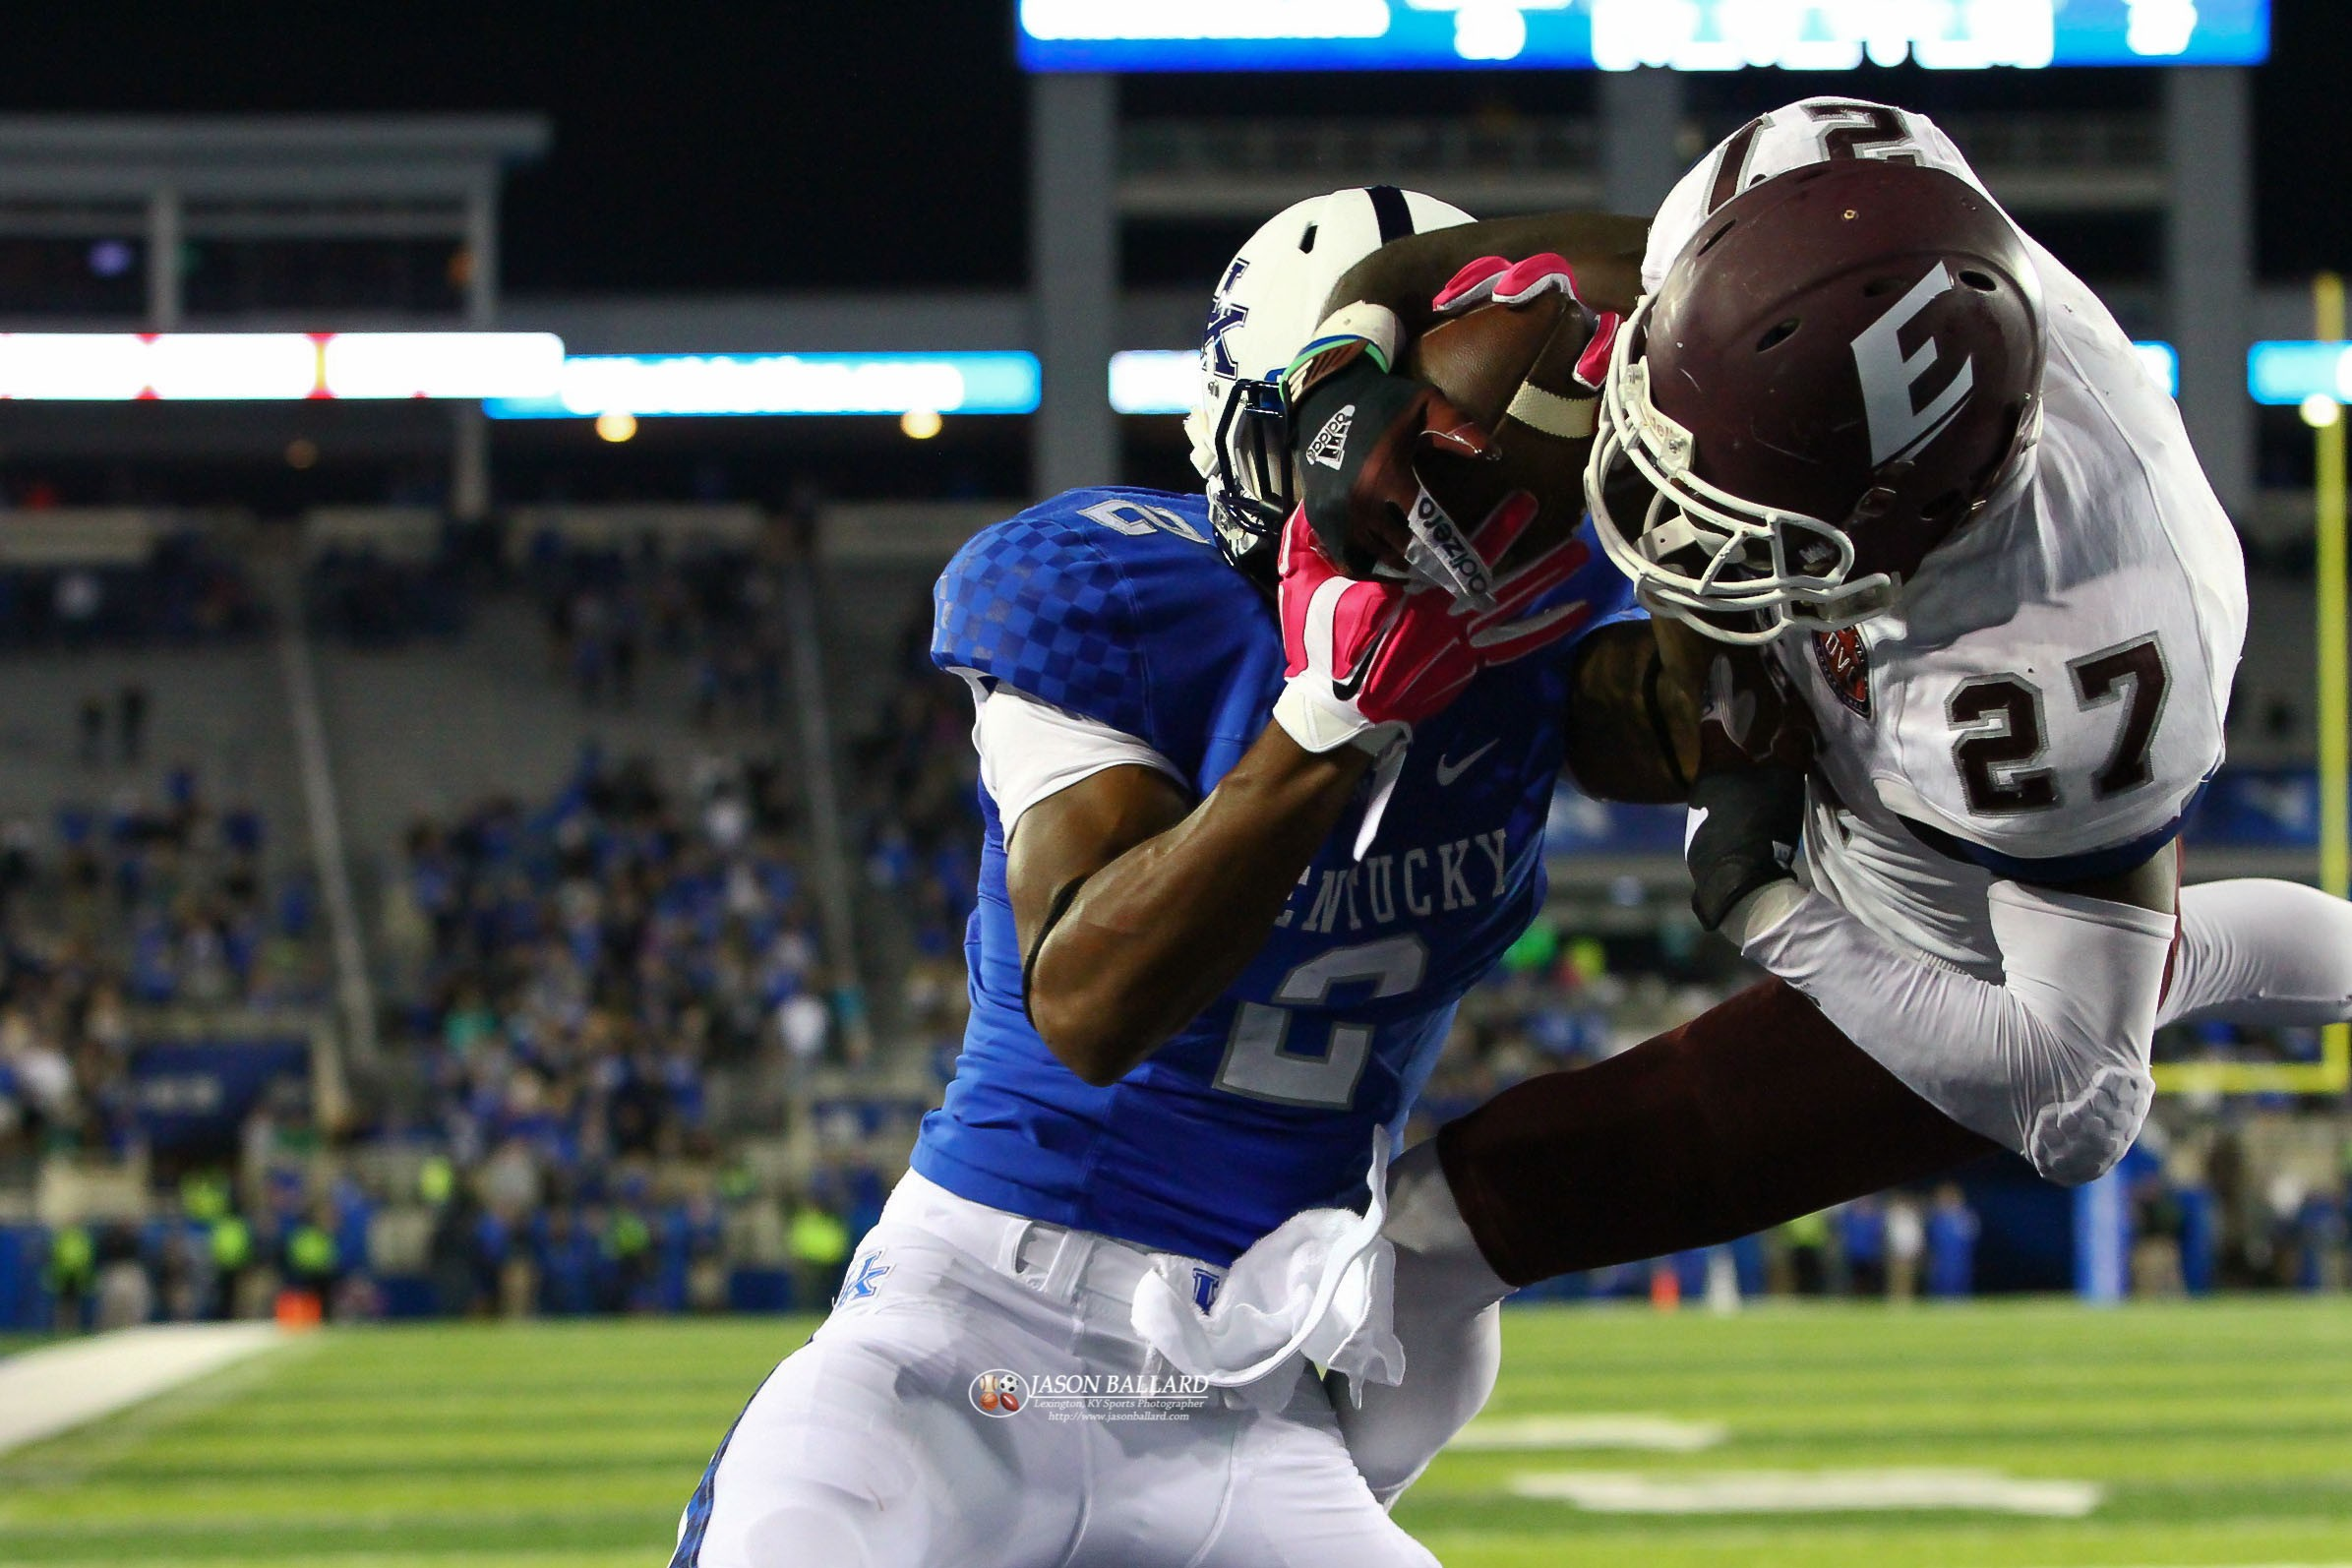 UK, EKU key plays photo gallery